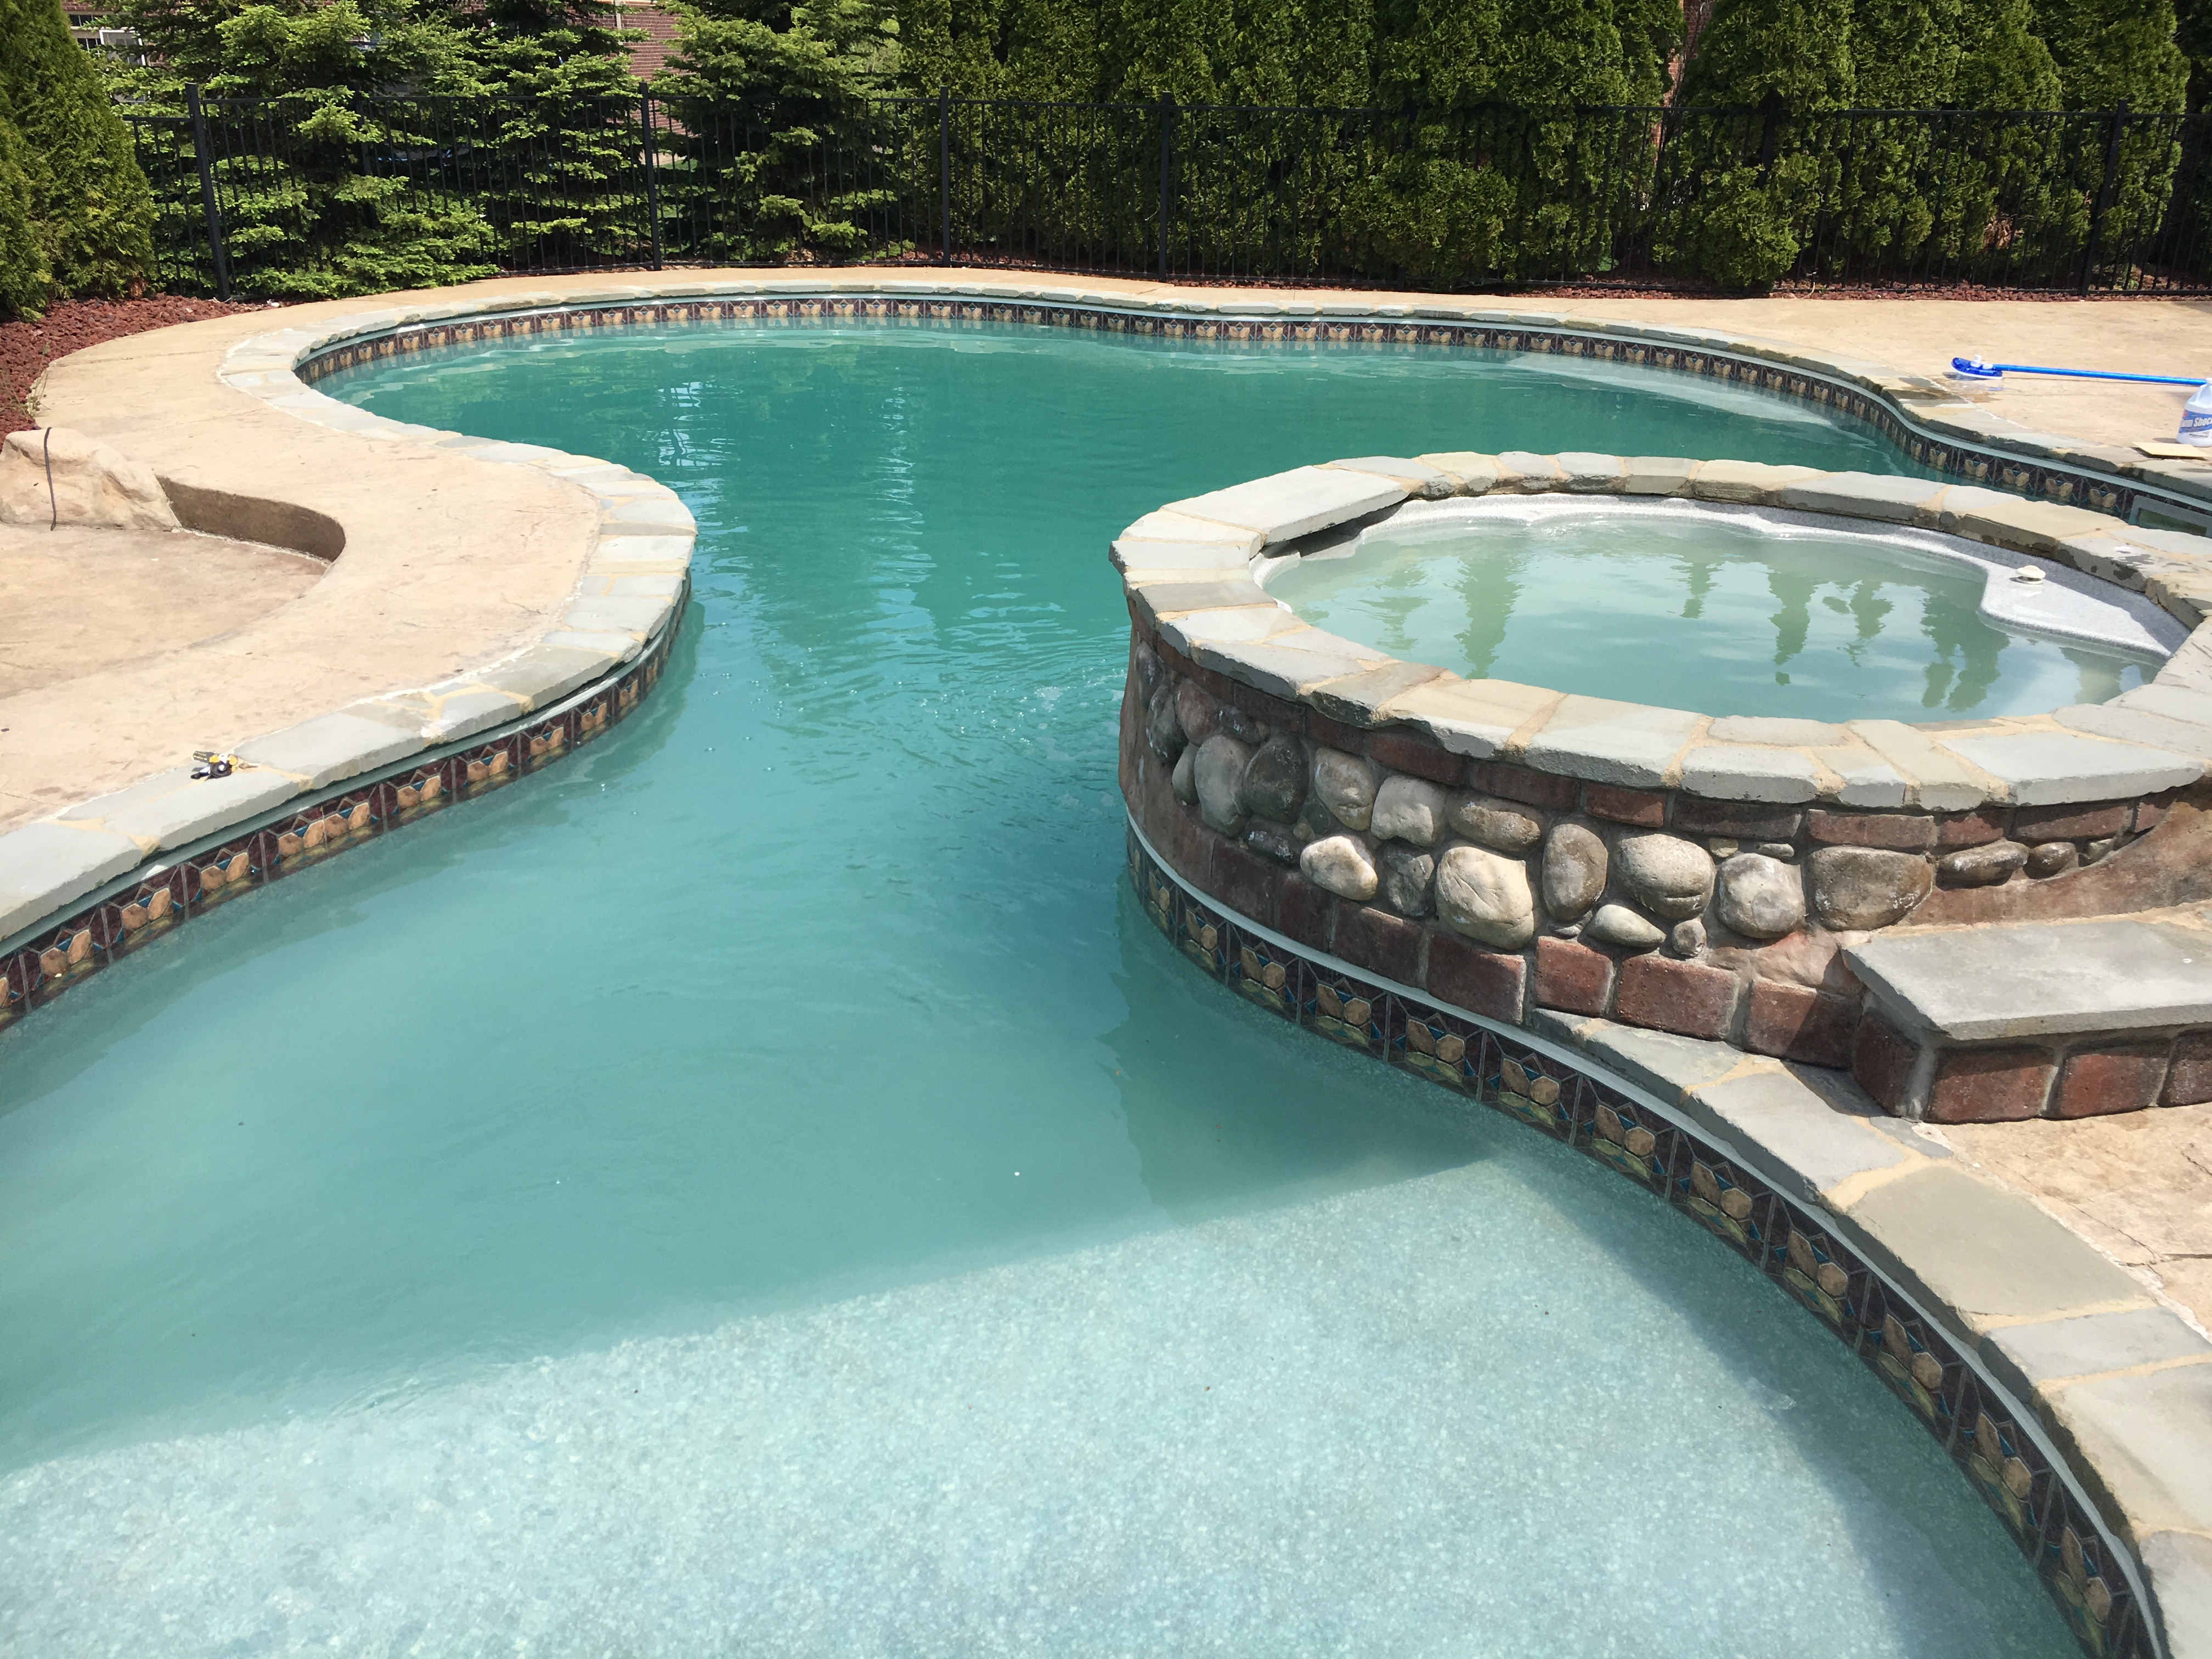 Staining: Manganese – Ask the Pool Guy